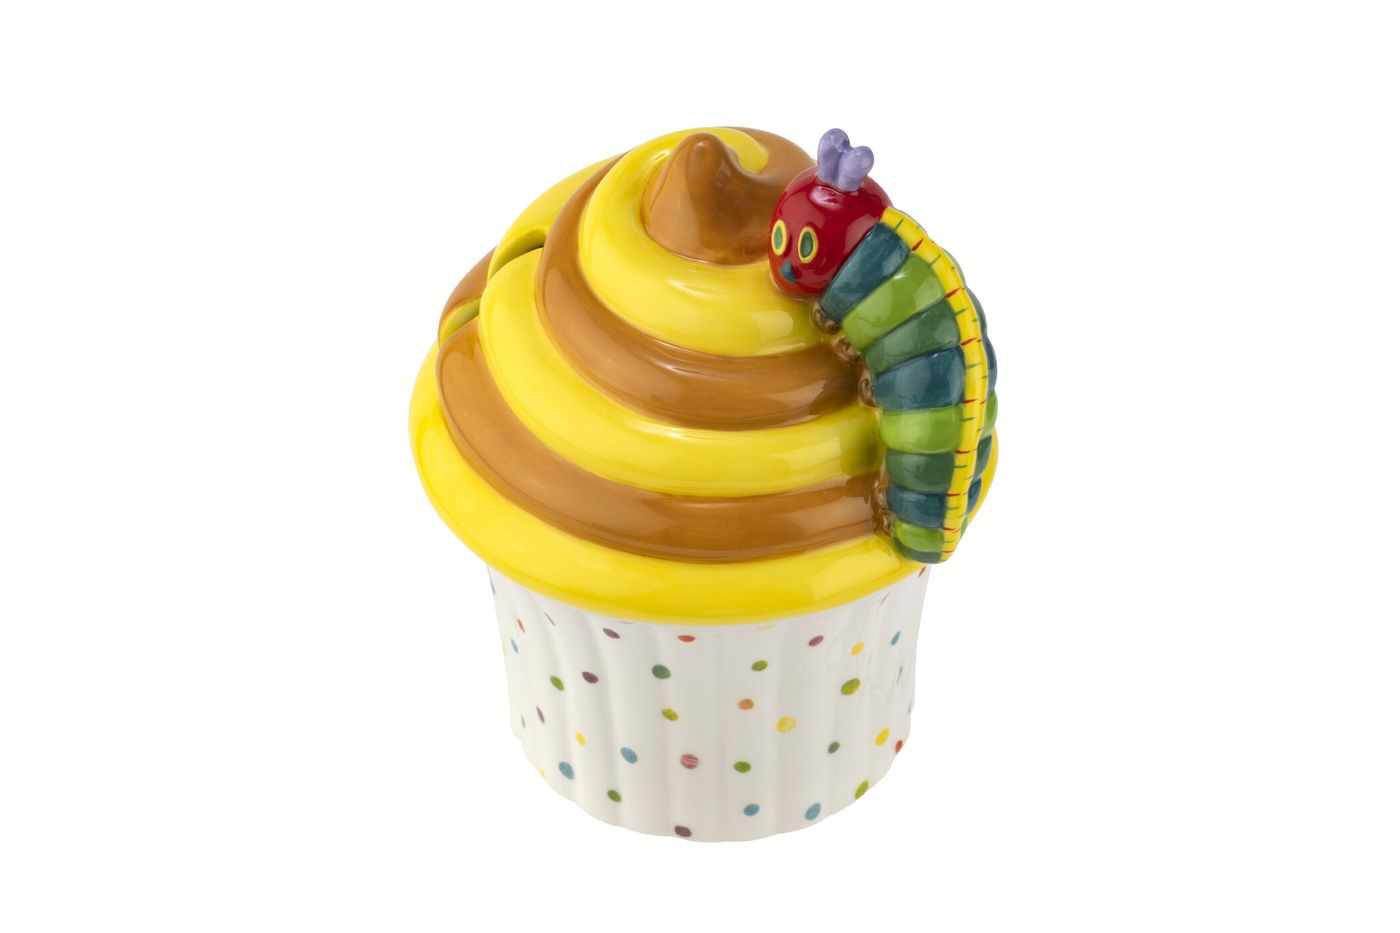 Portmeirion The Very Hungry Caterpillar by Eric Carle Money Box Cupcake thumb 4